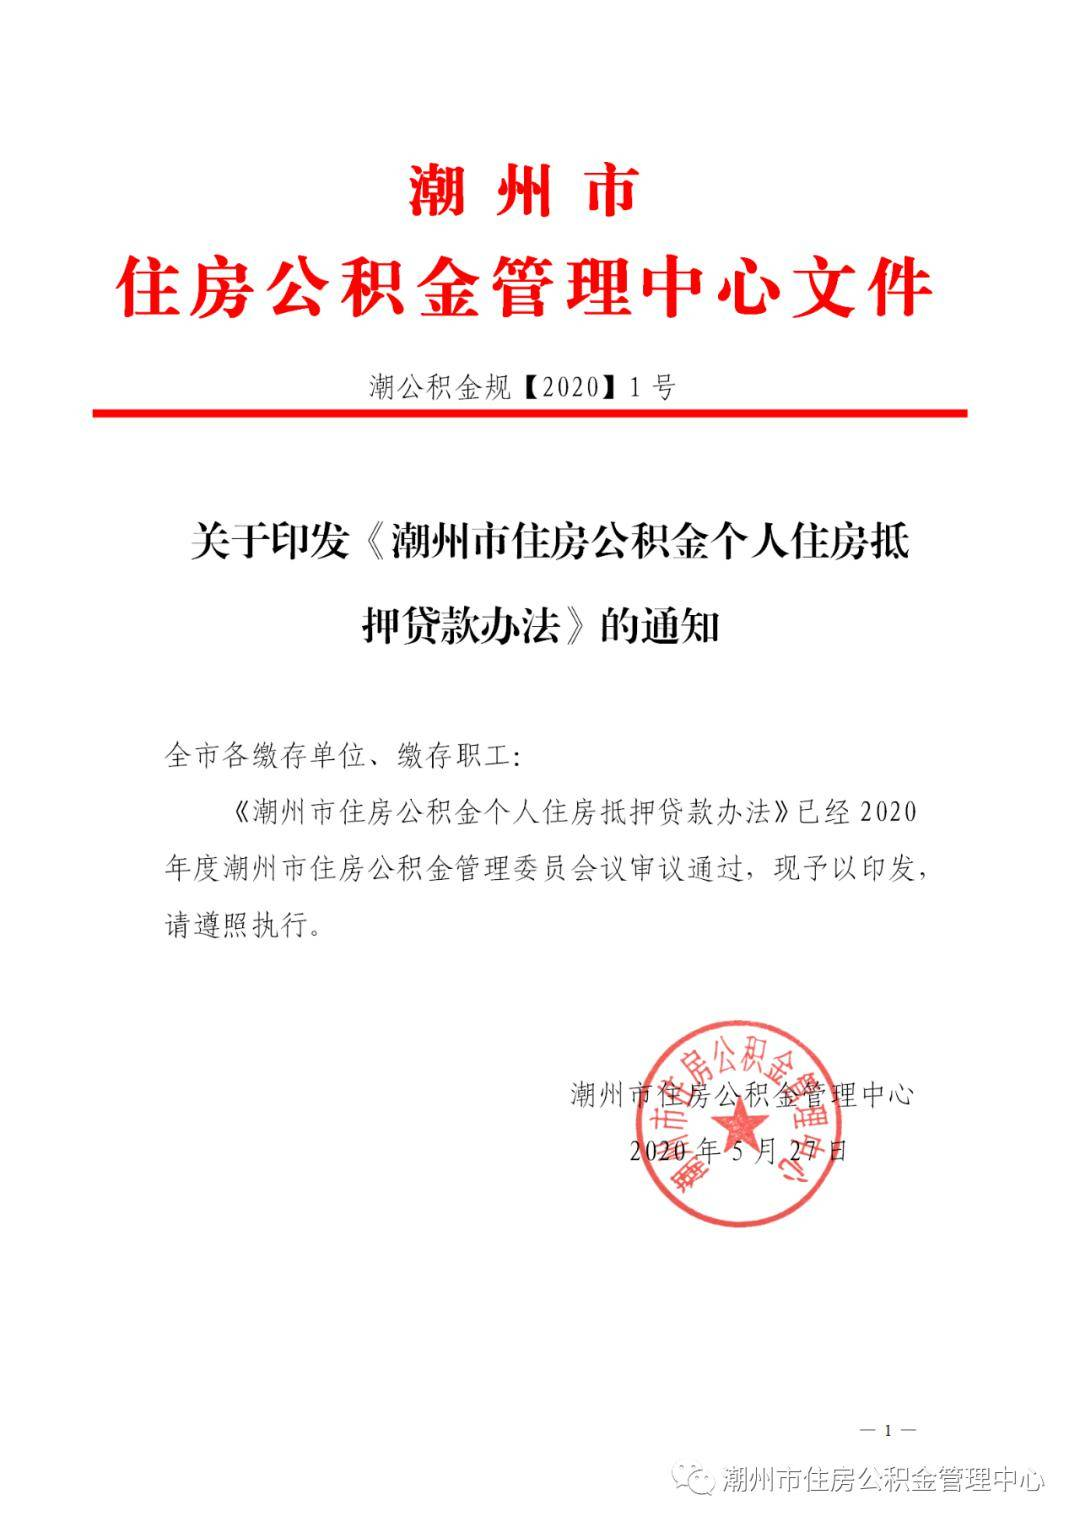 http://www.21gdl.com/wenhuayichan/284577.html